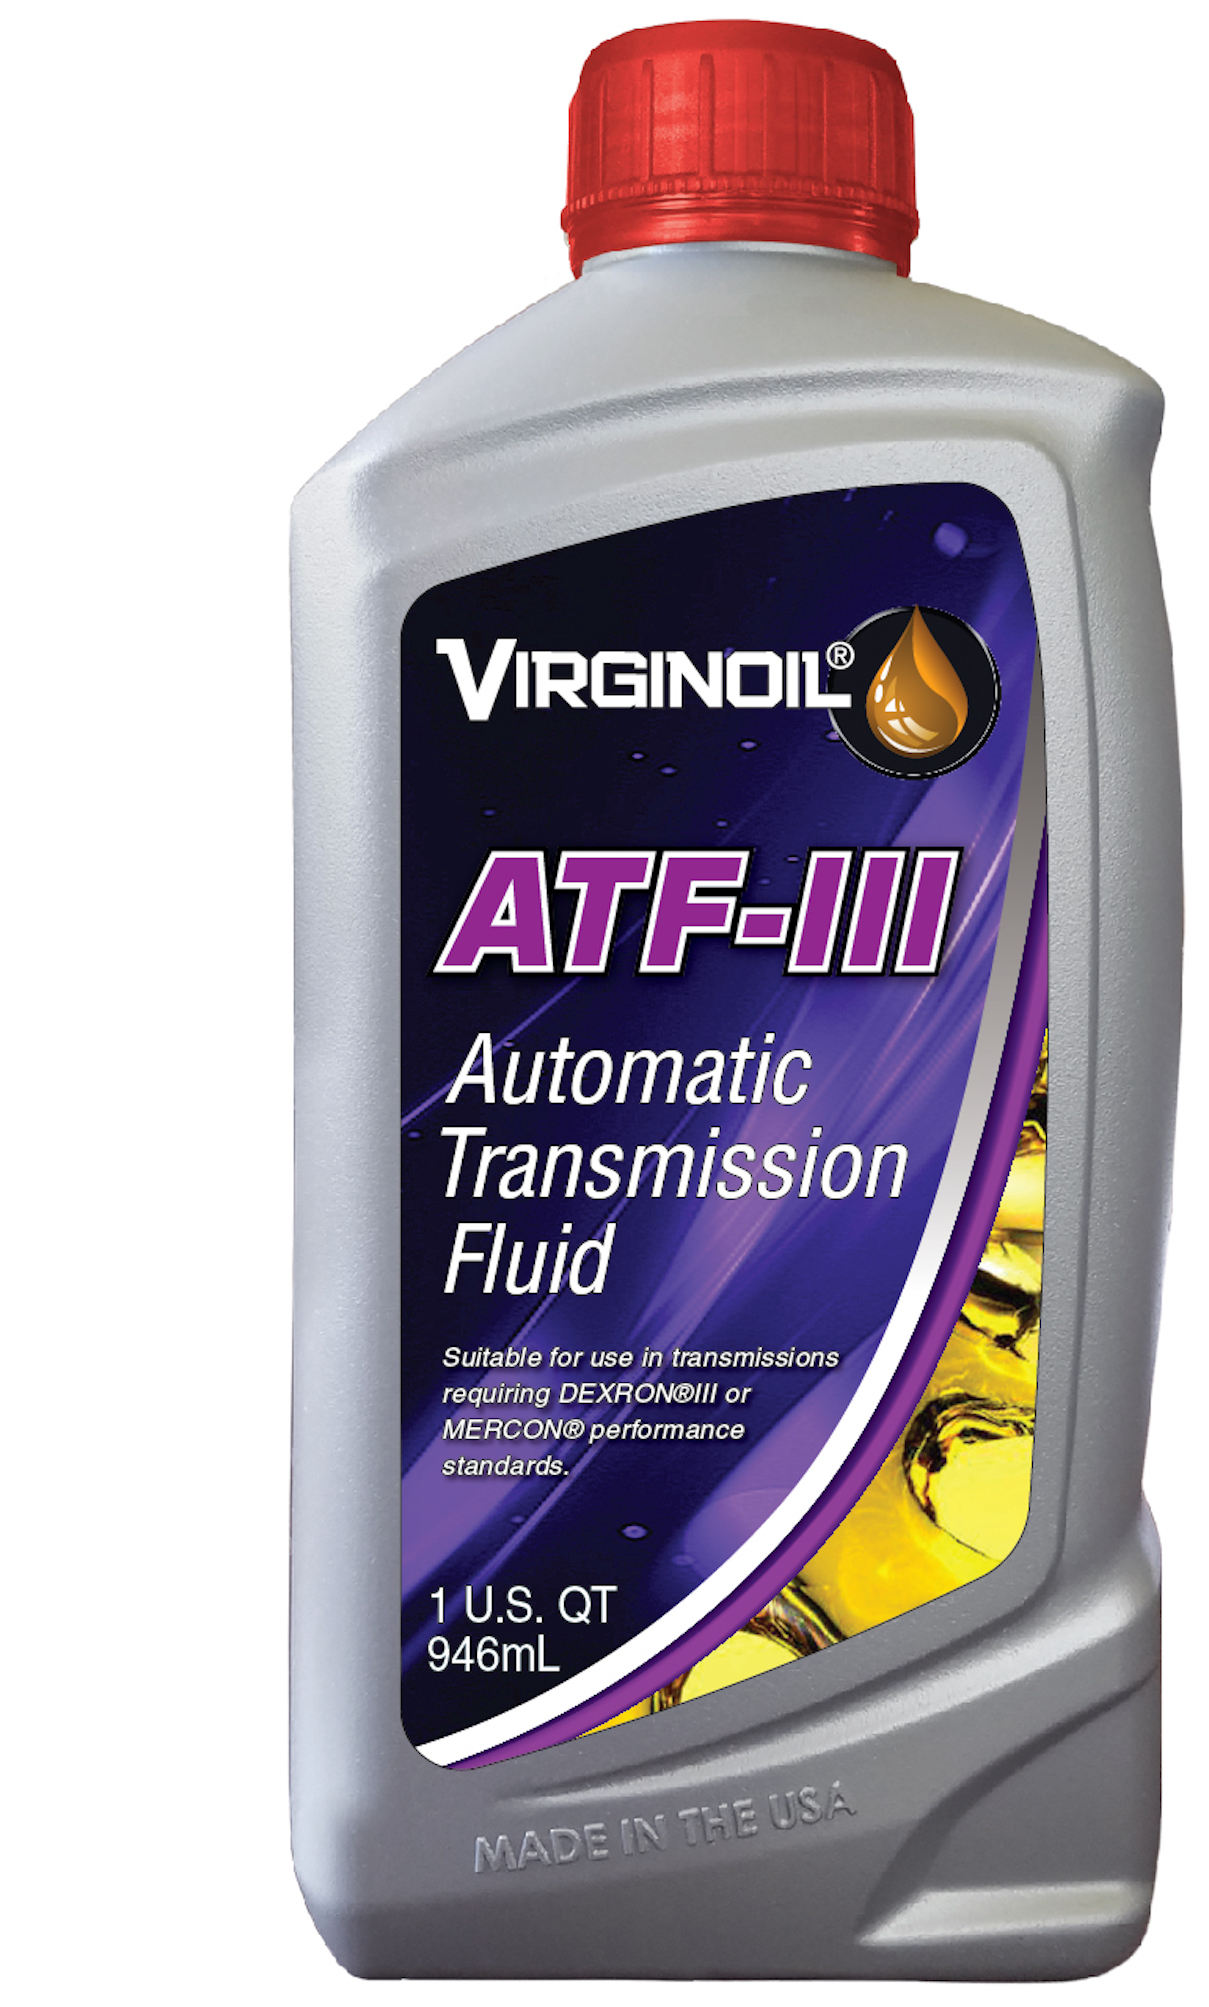 LIQUIDE de TRANSMISSION AUTOMATIQUE (ATF III)